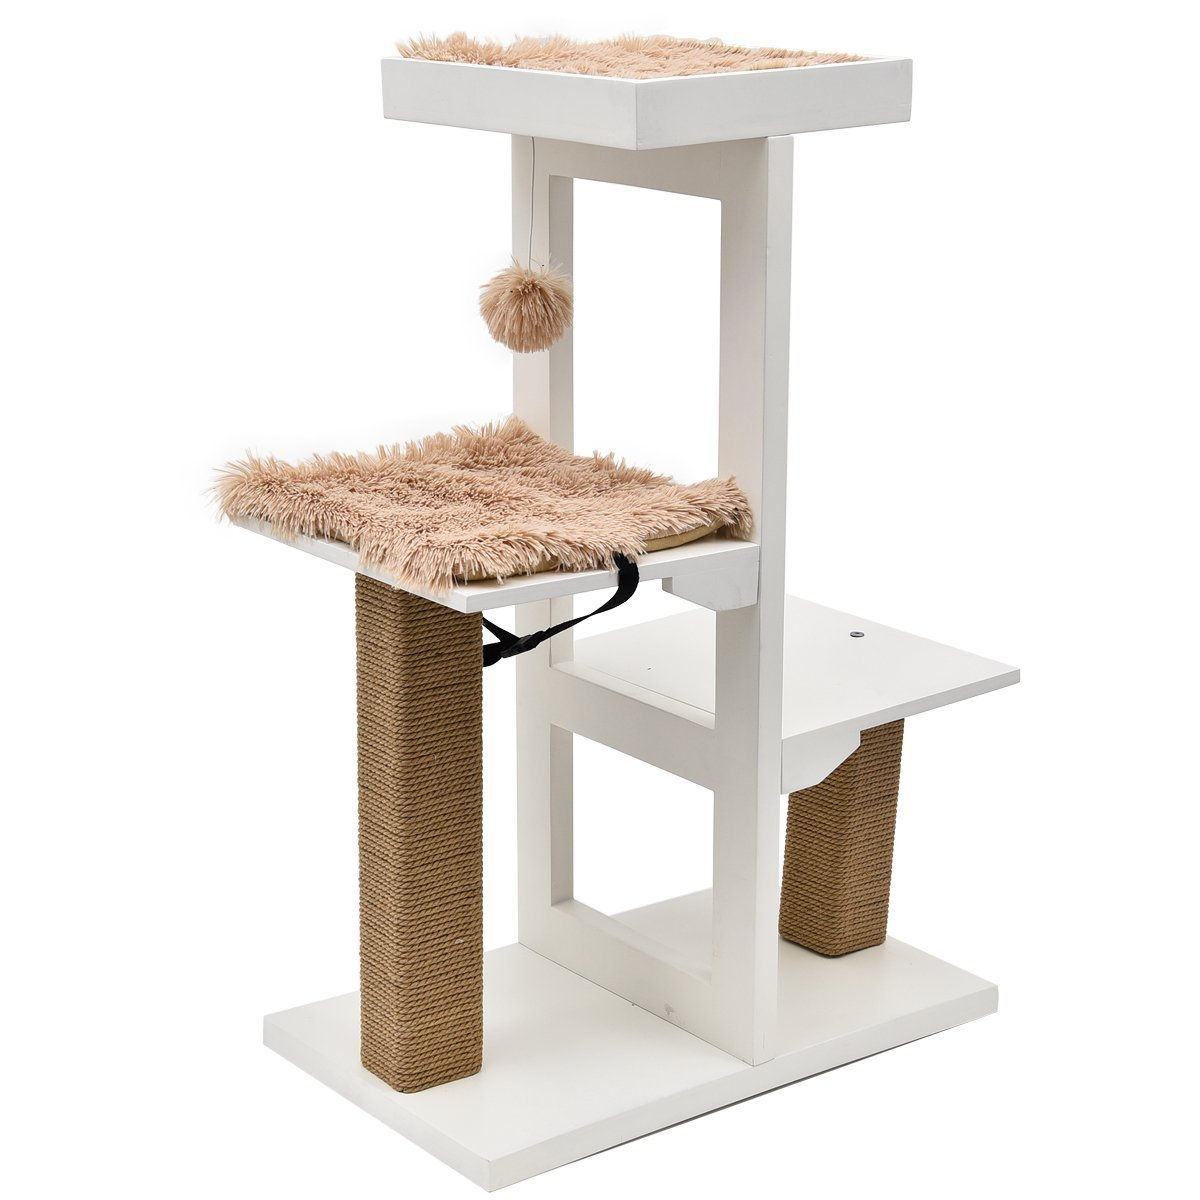 Pawz Road 36.6'' Multi Level Cat Tree Kitten Scratching Post Activity Centre Natural Sisal Cat Toys Beige 14 Days Delivered